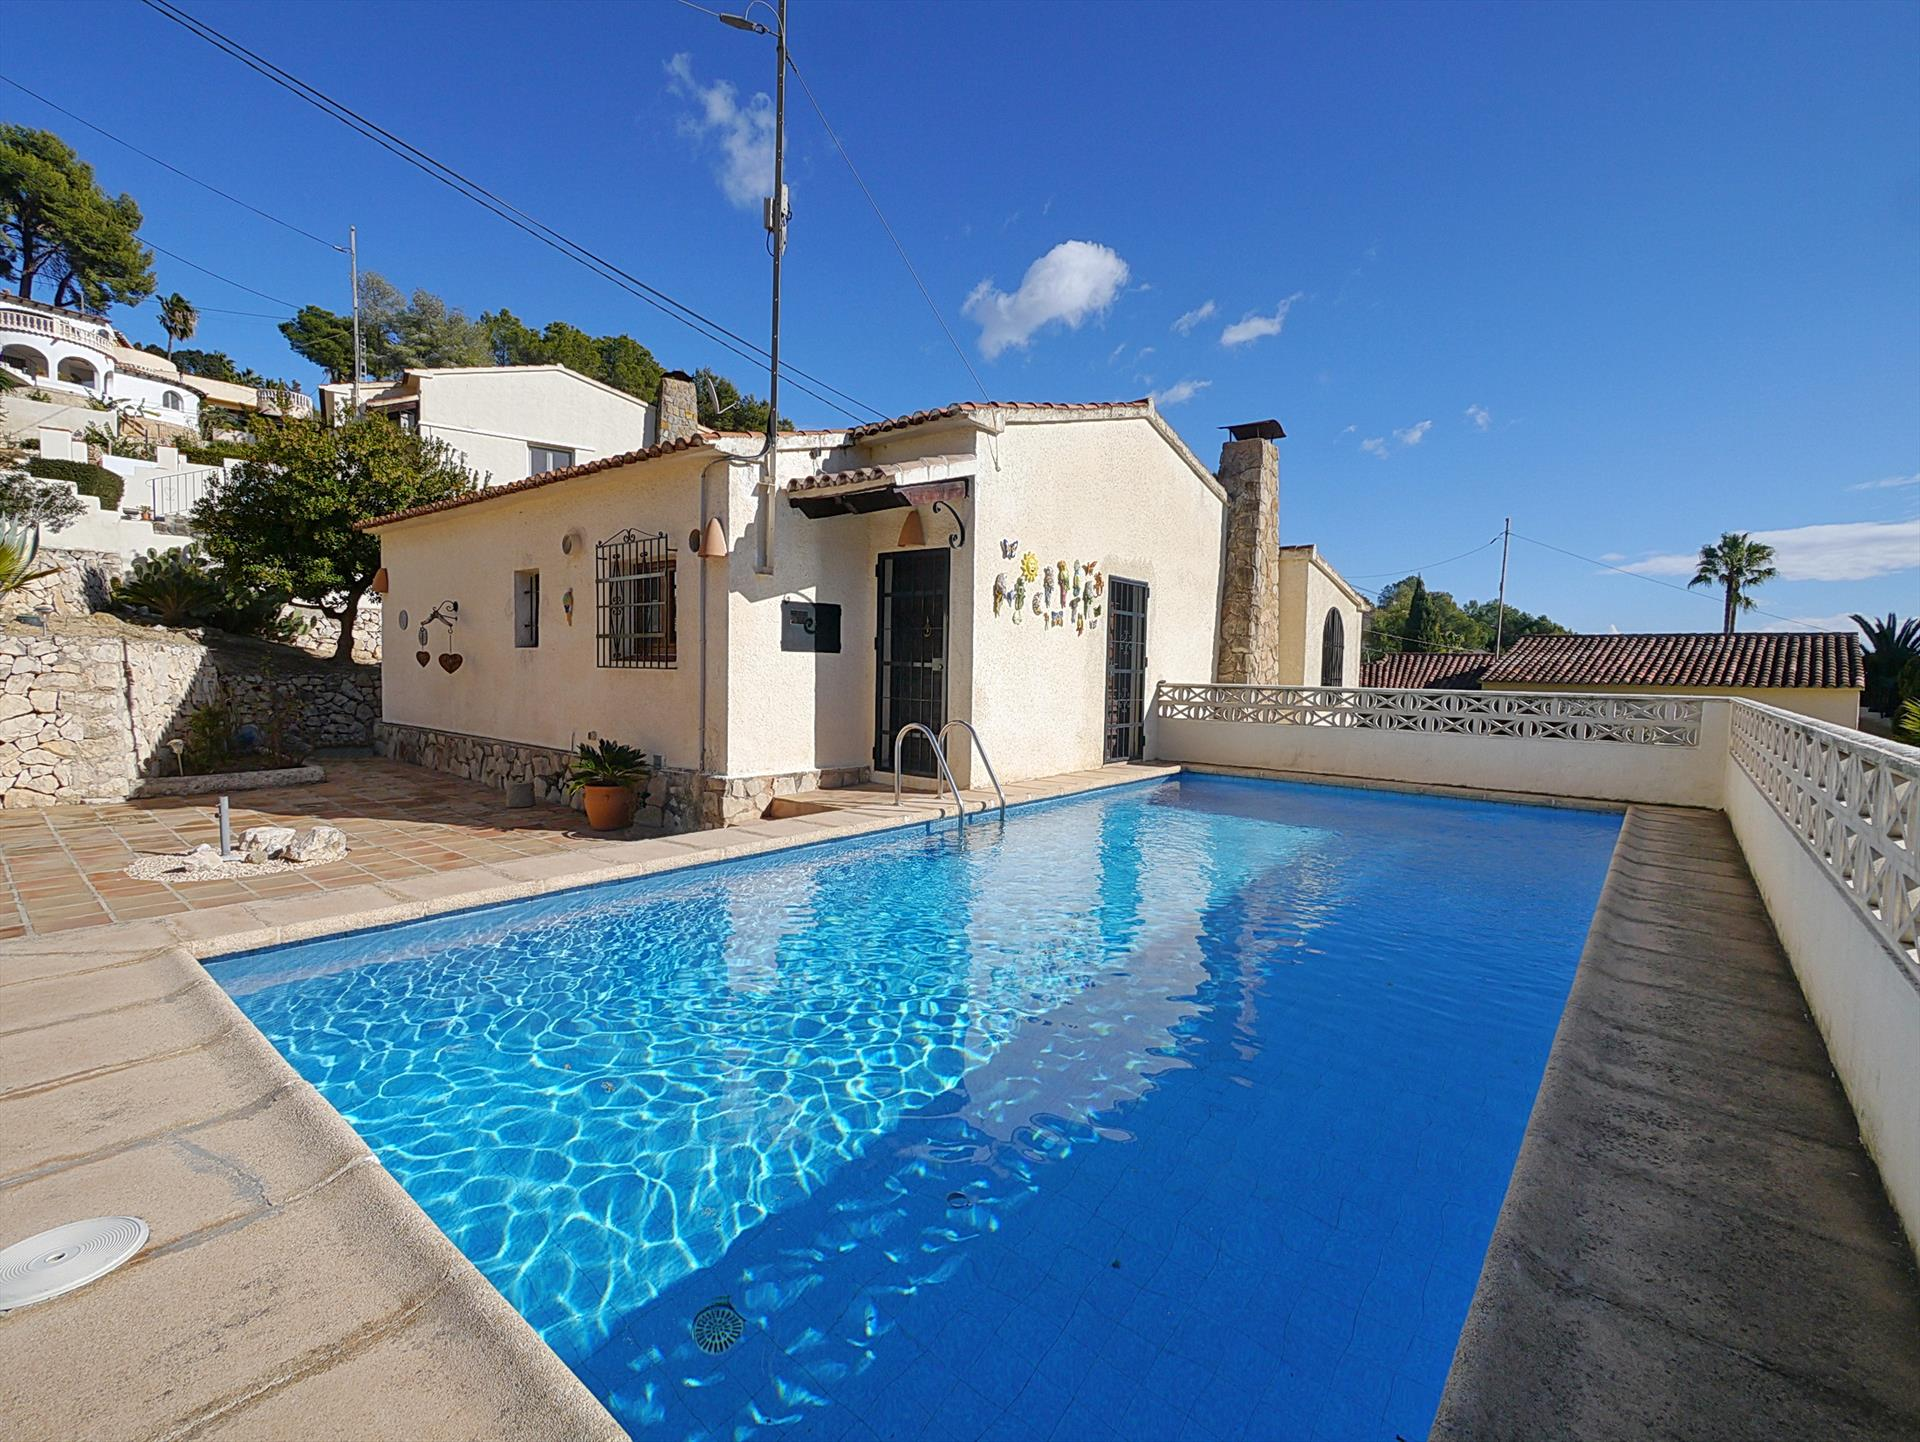 El Refugio, Classic and romantic villa with private pool in Benissa, on the Costa Blanca, Spain for 6 persons. The villa is situated.....